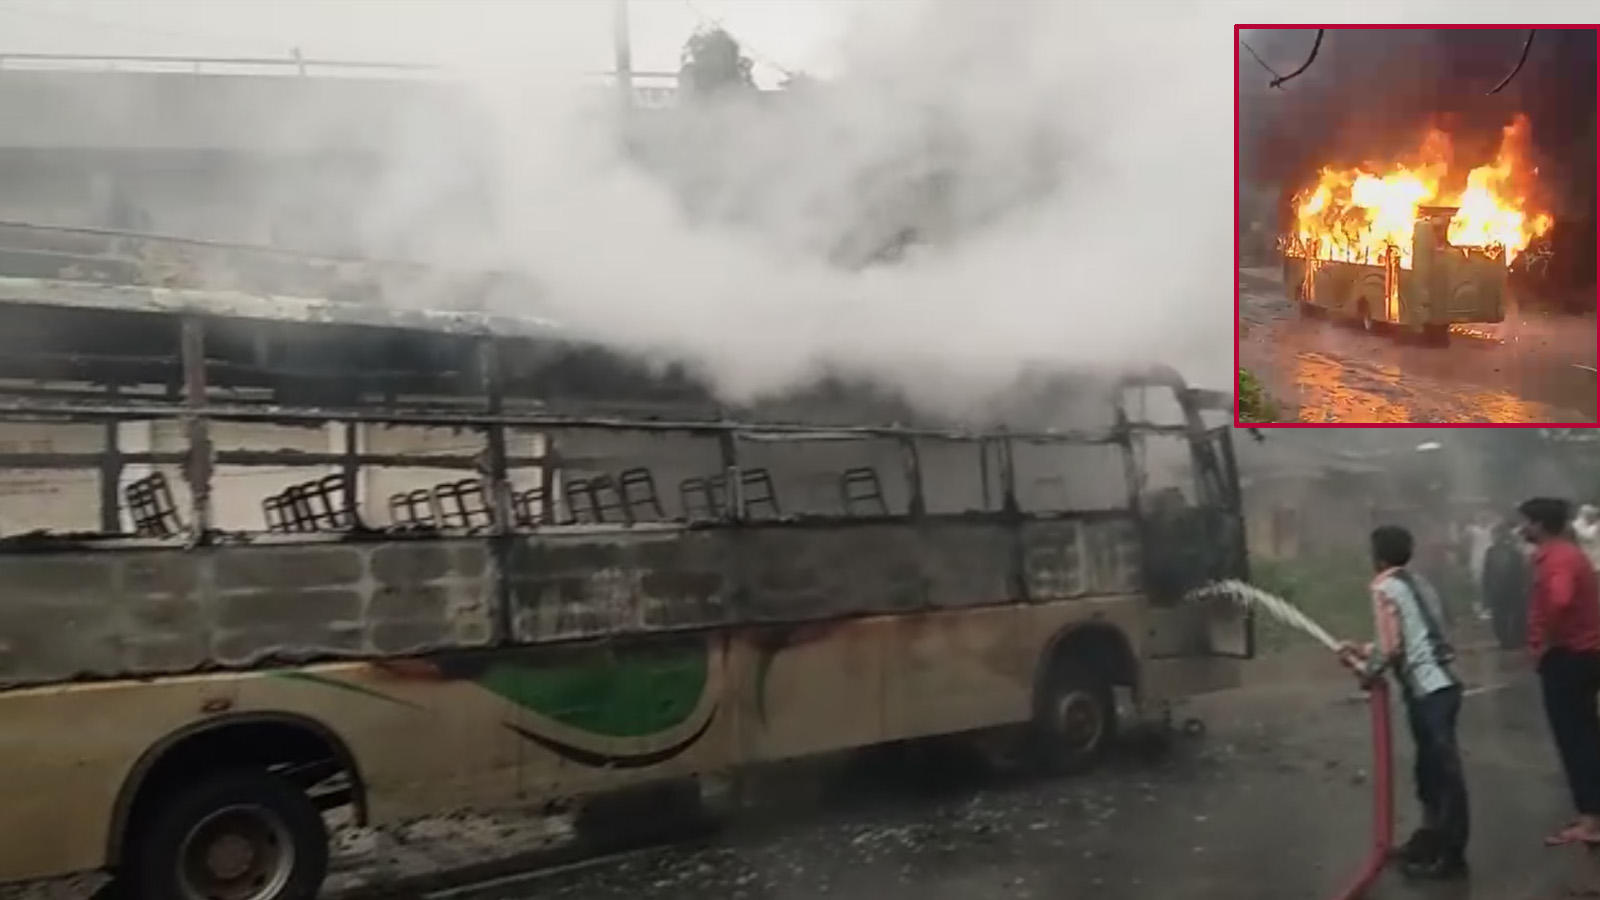 Bus Accident : Latest news, photos and videos on bus